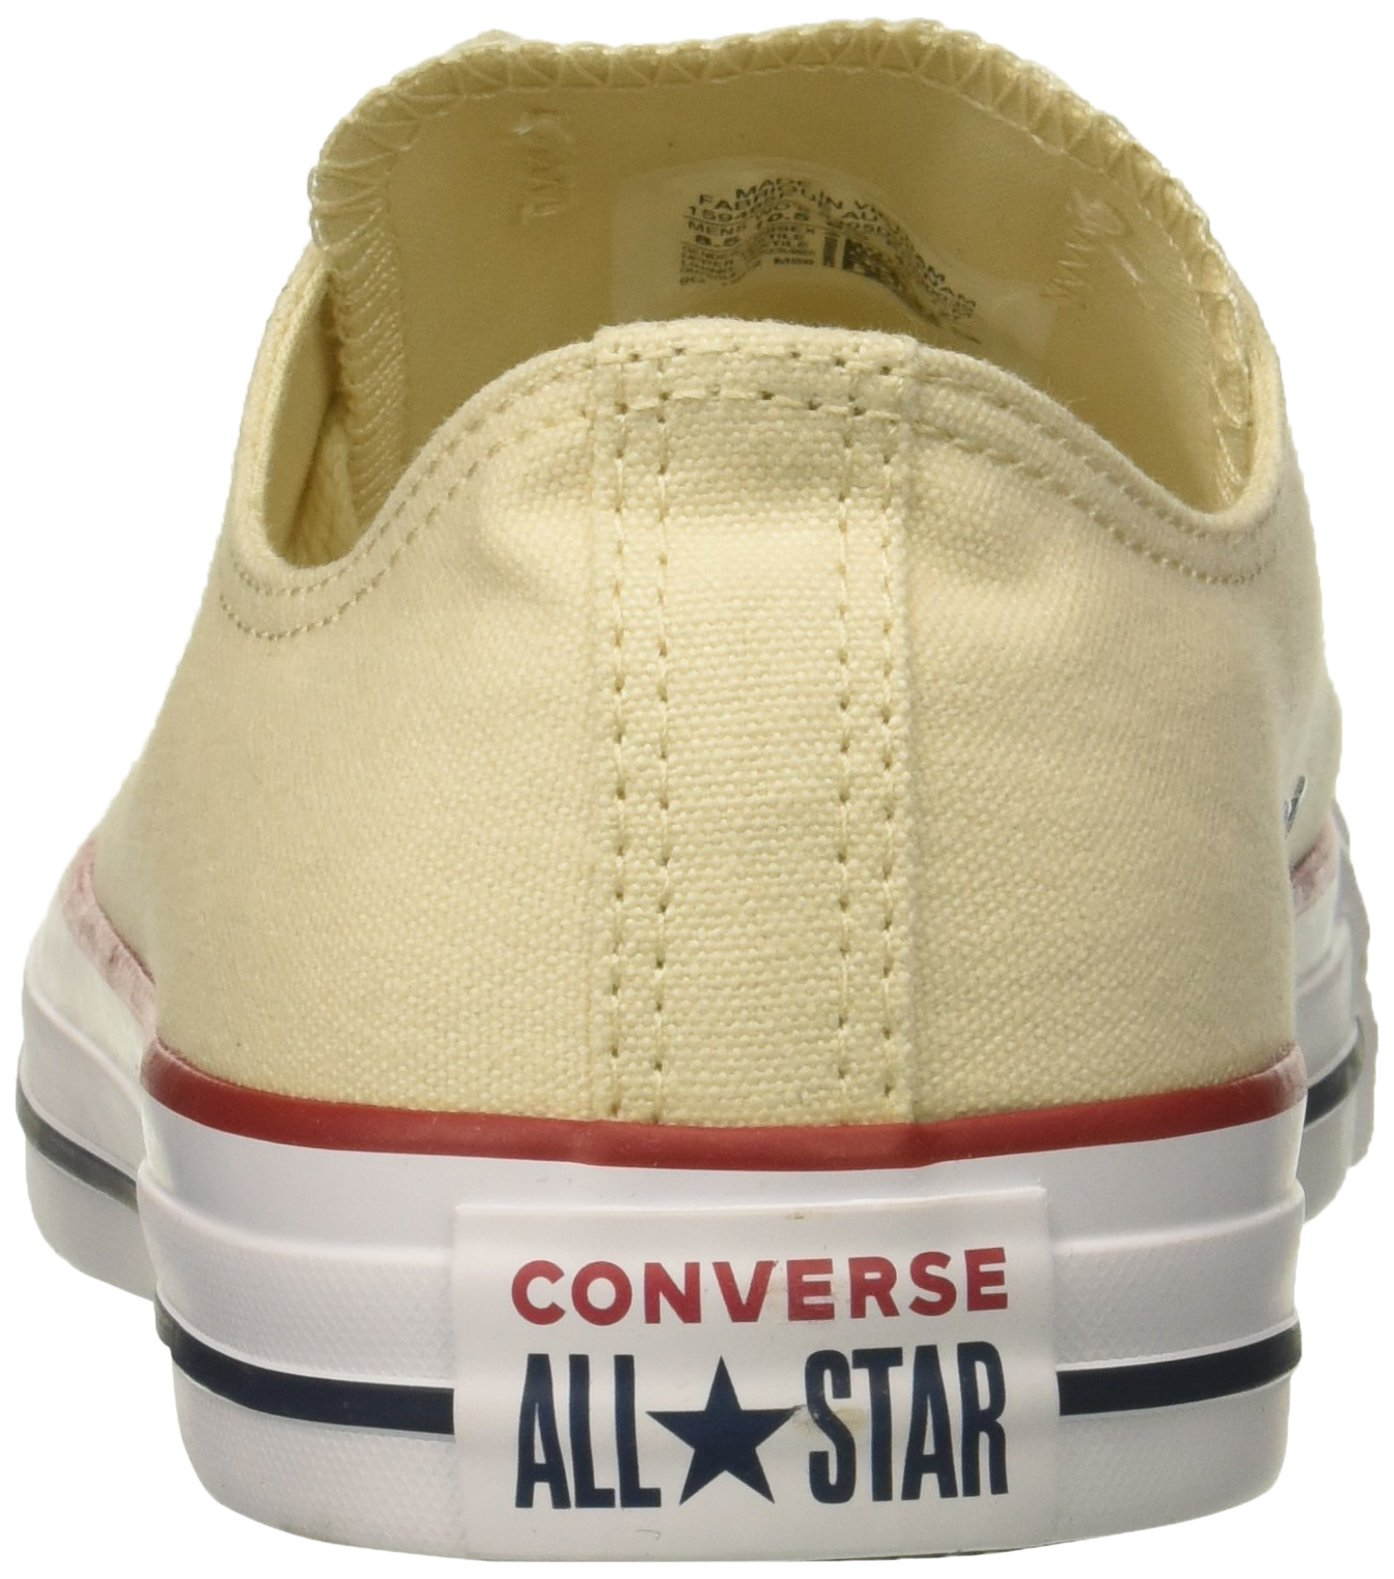 Converse Chuck Taylor All Star Low Top Sneaker, Natural Ivory, 11 M US by Converse (Image #2)